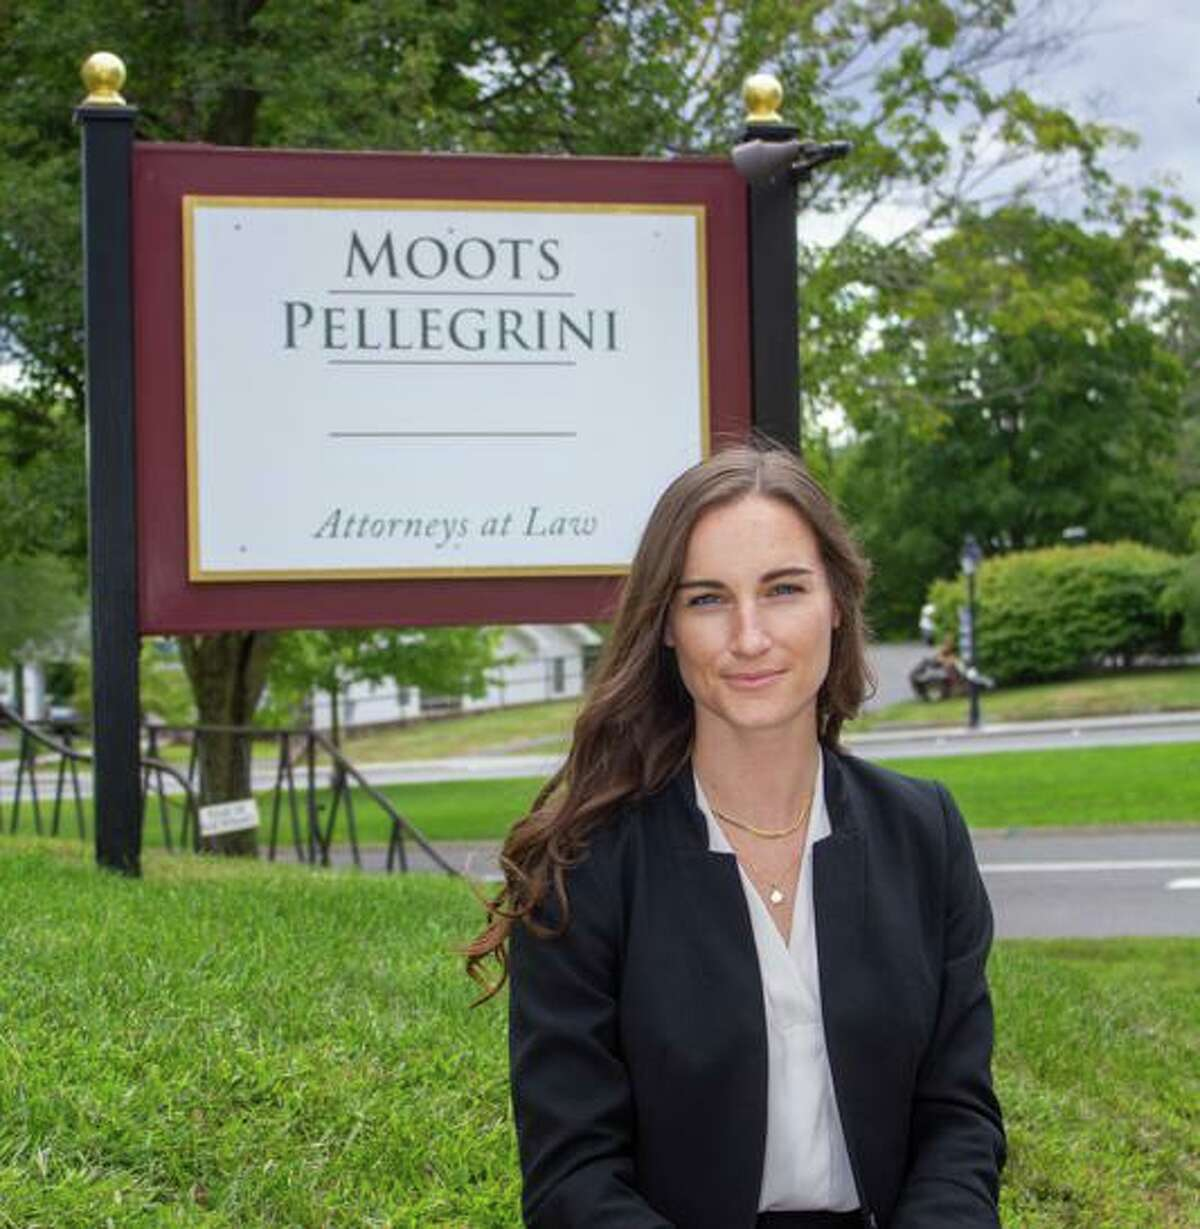 Attorney Jessica Cochrane, a New Milford High School graduate, is part way through her first year at the law firm of Moots Pellegrini in New Milford.